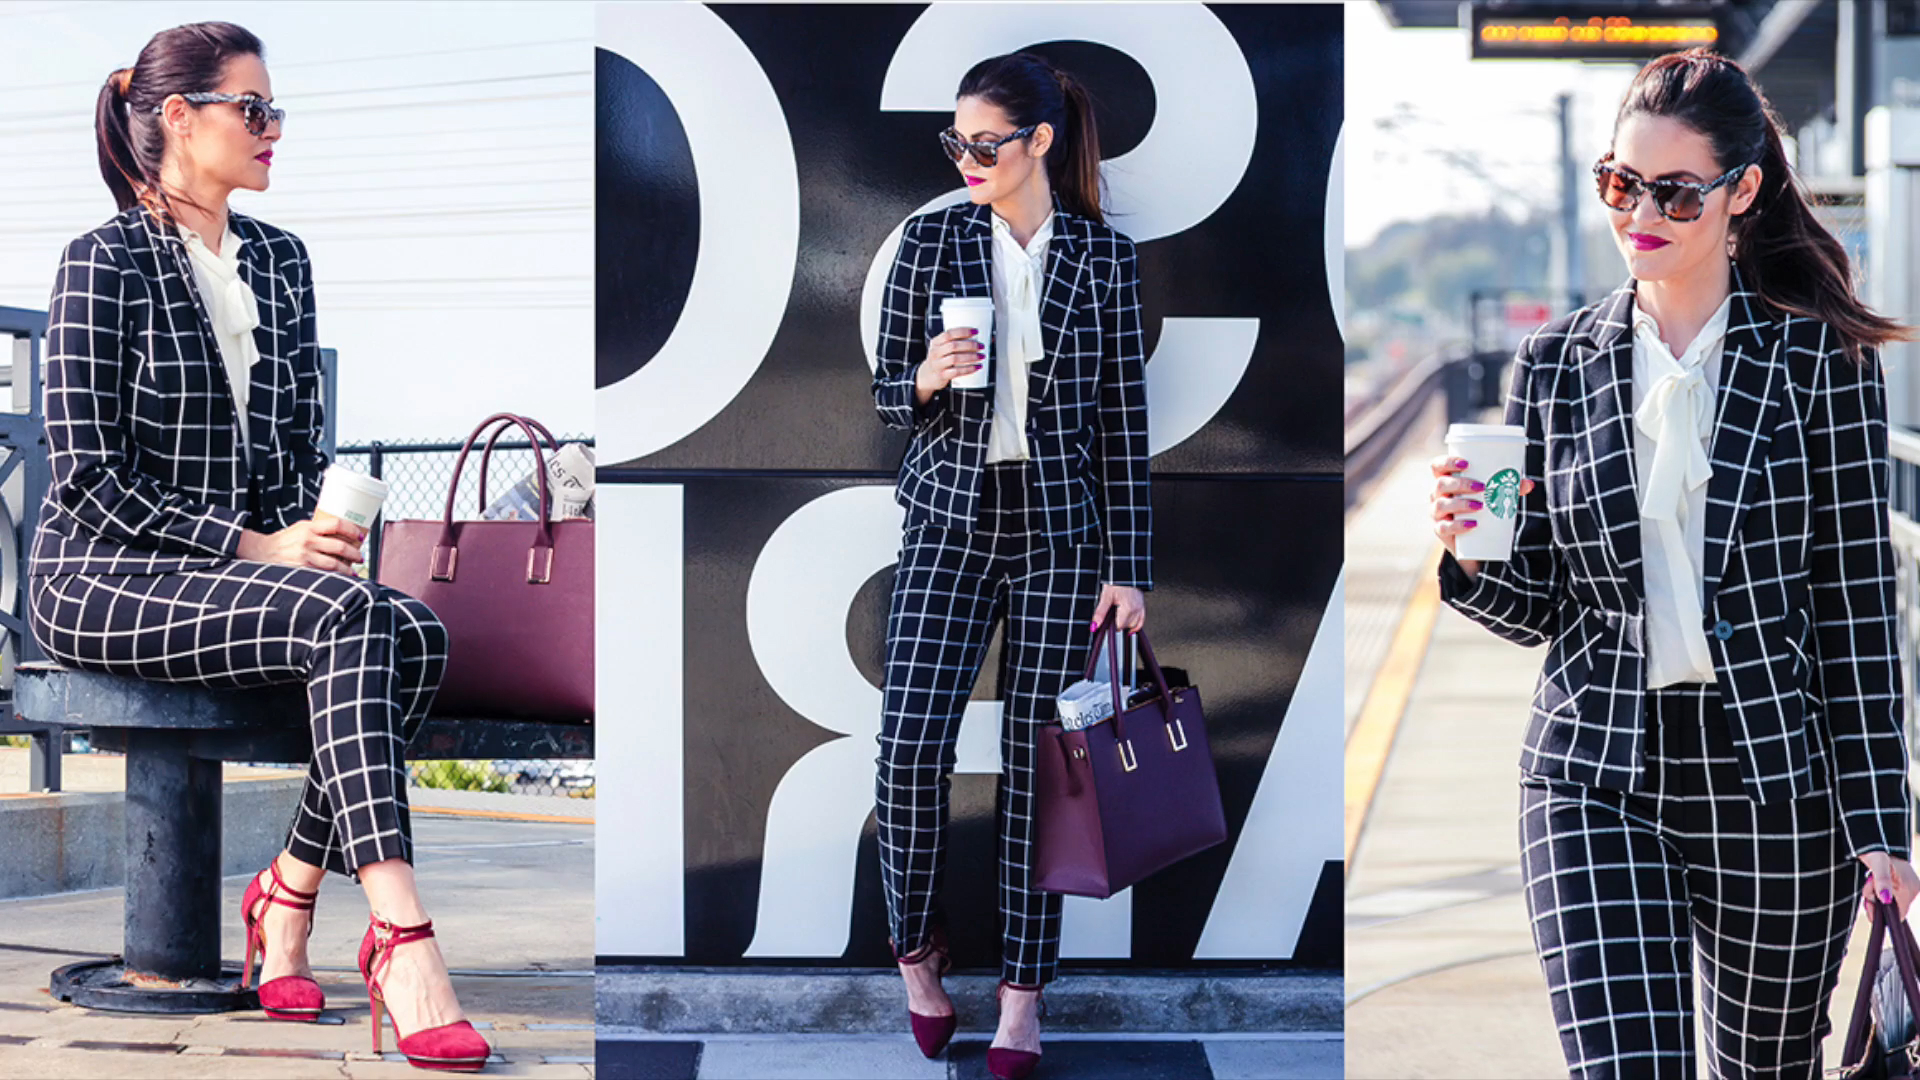 Fall Fashion Inspiration: The Plaid Suit